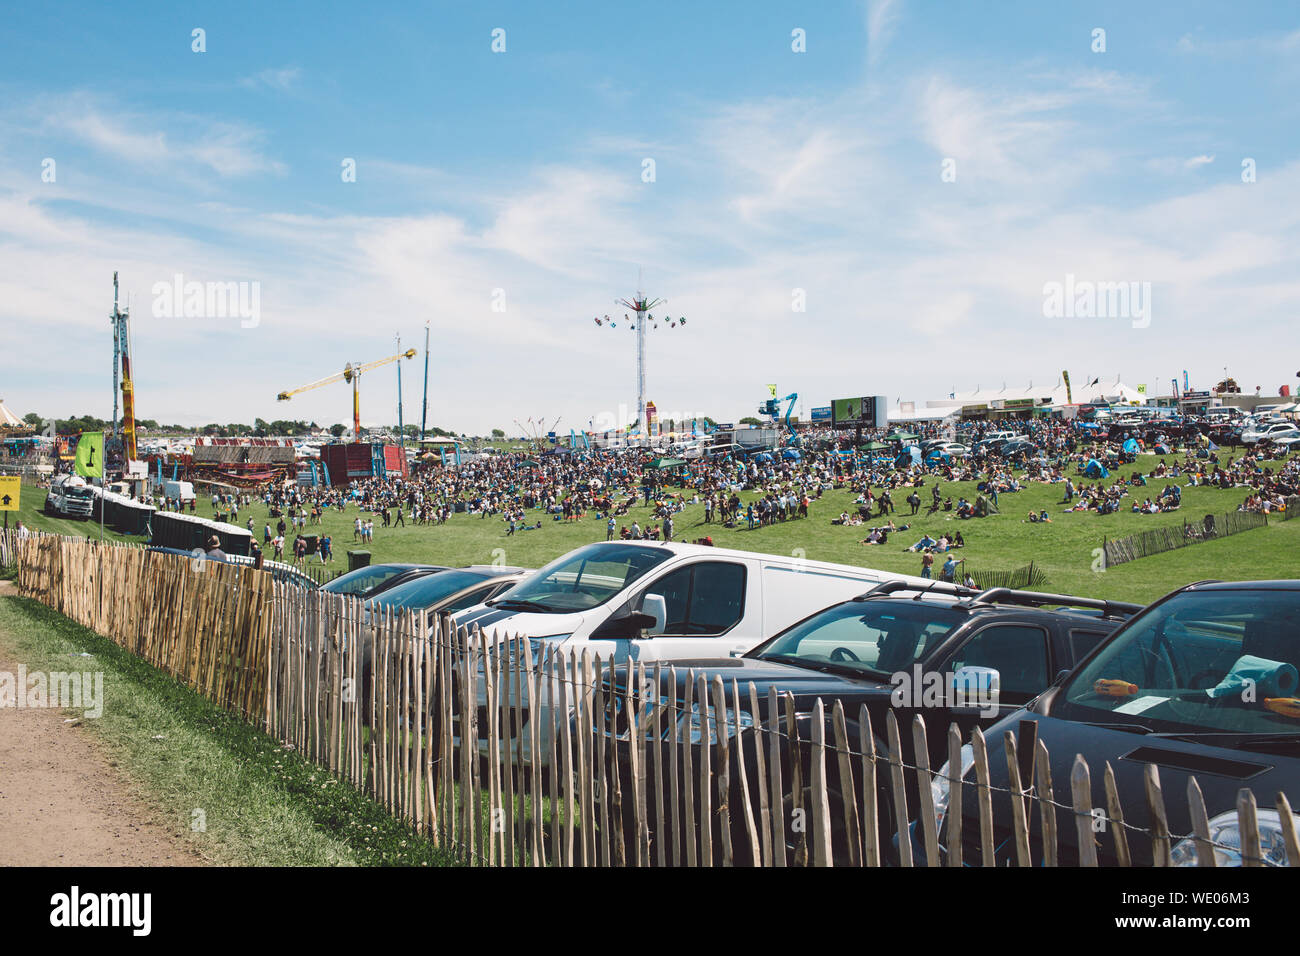 Cars Parked By Fence At Epsom Downs Racecourse Against Sky Stock Photo